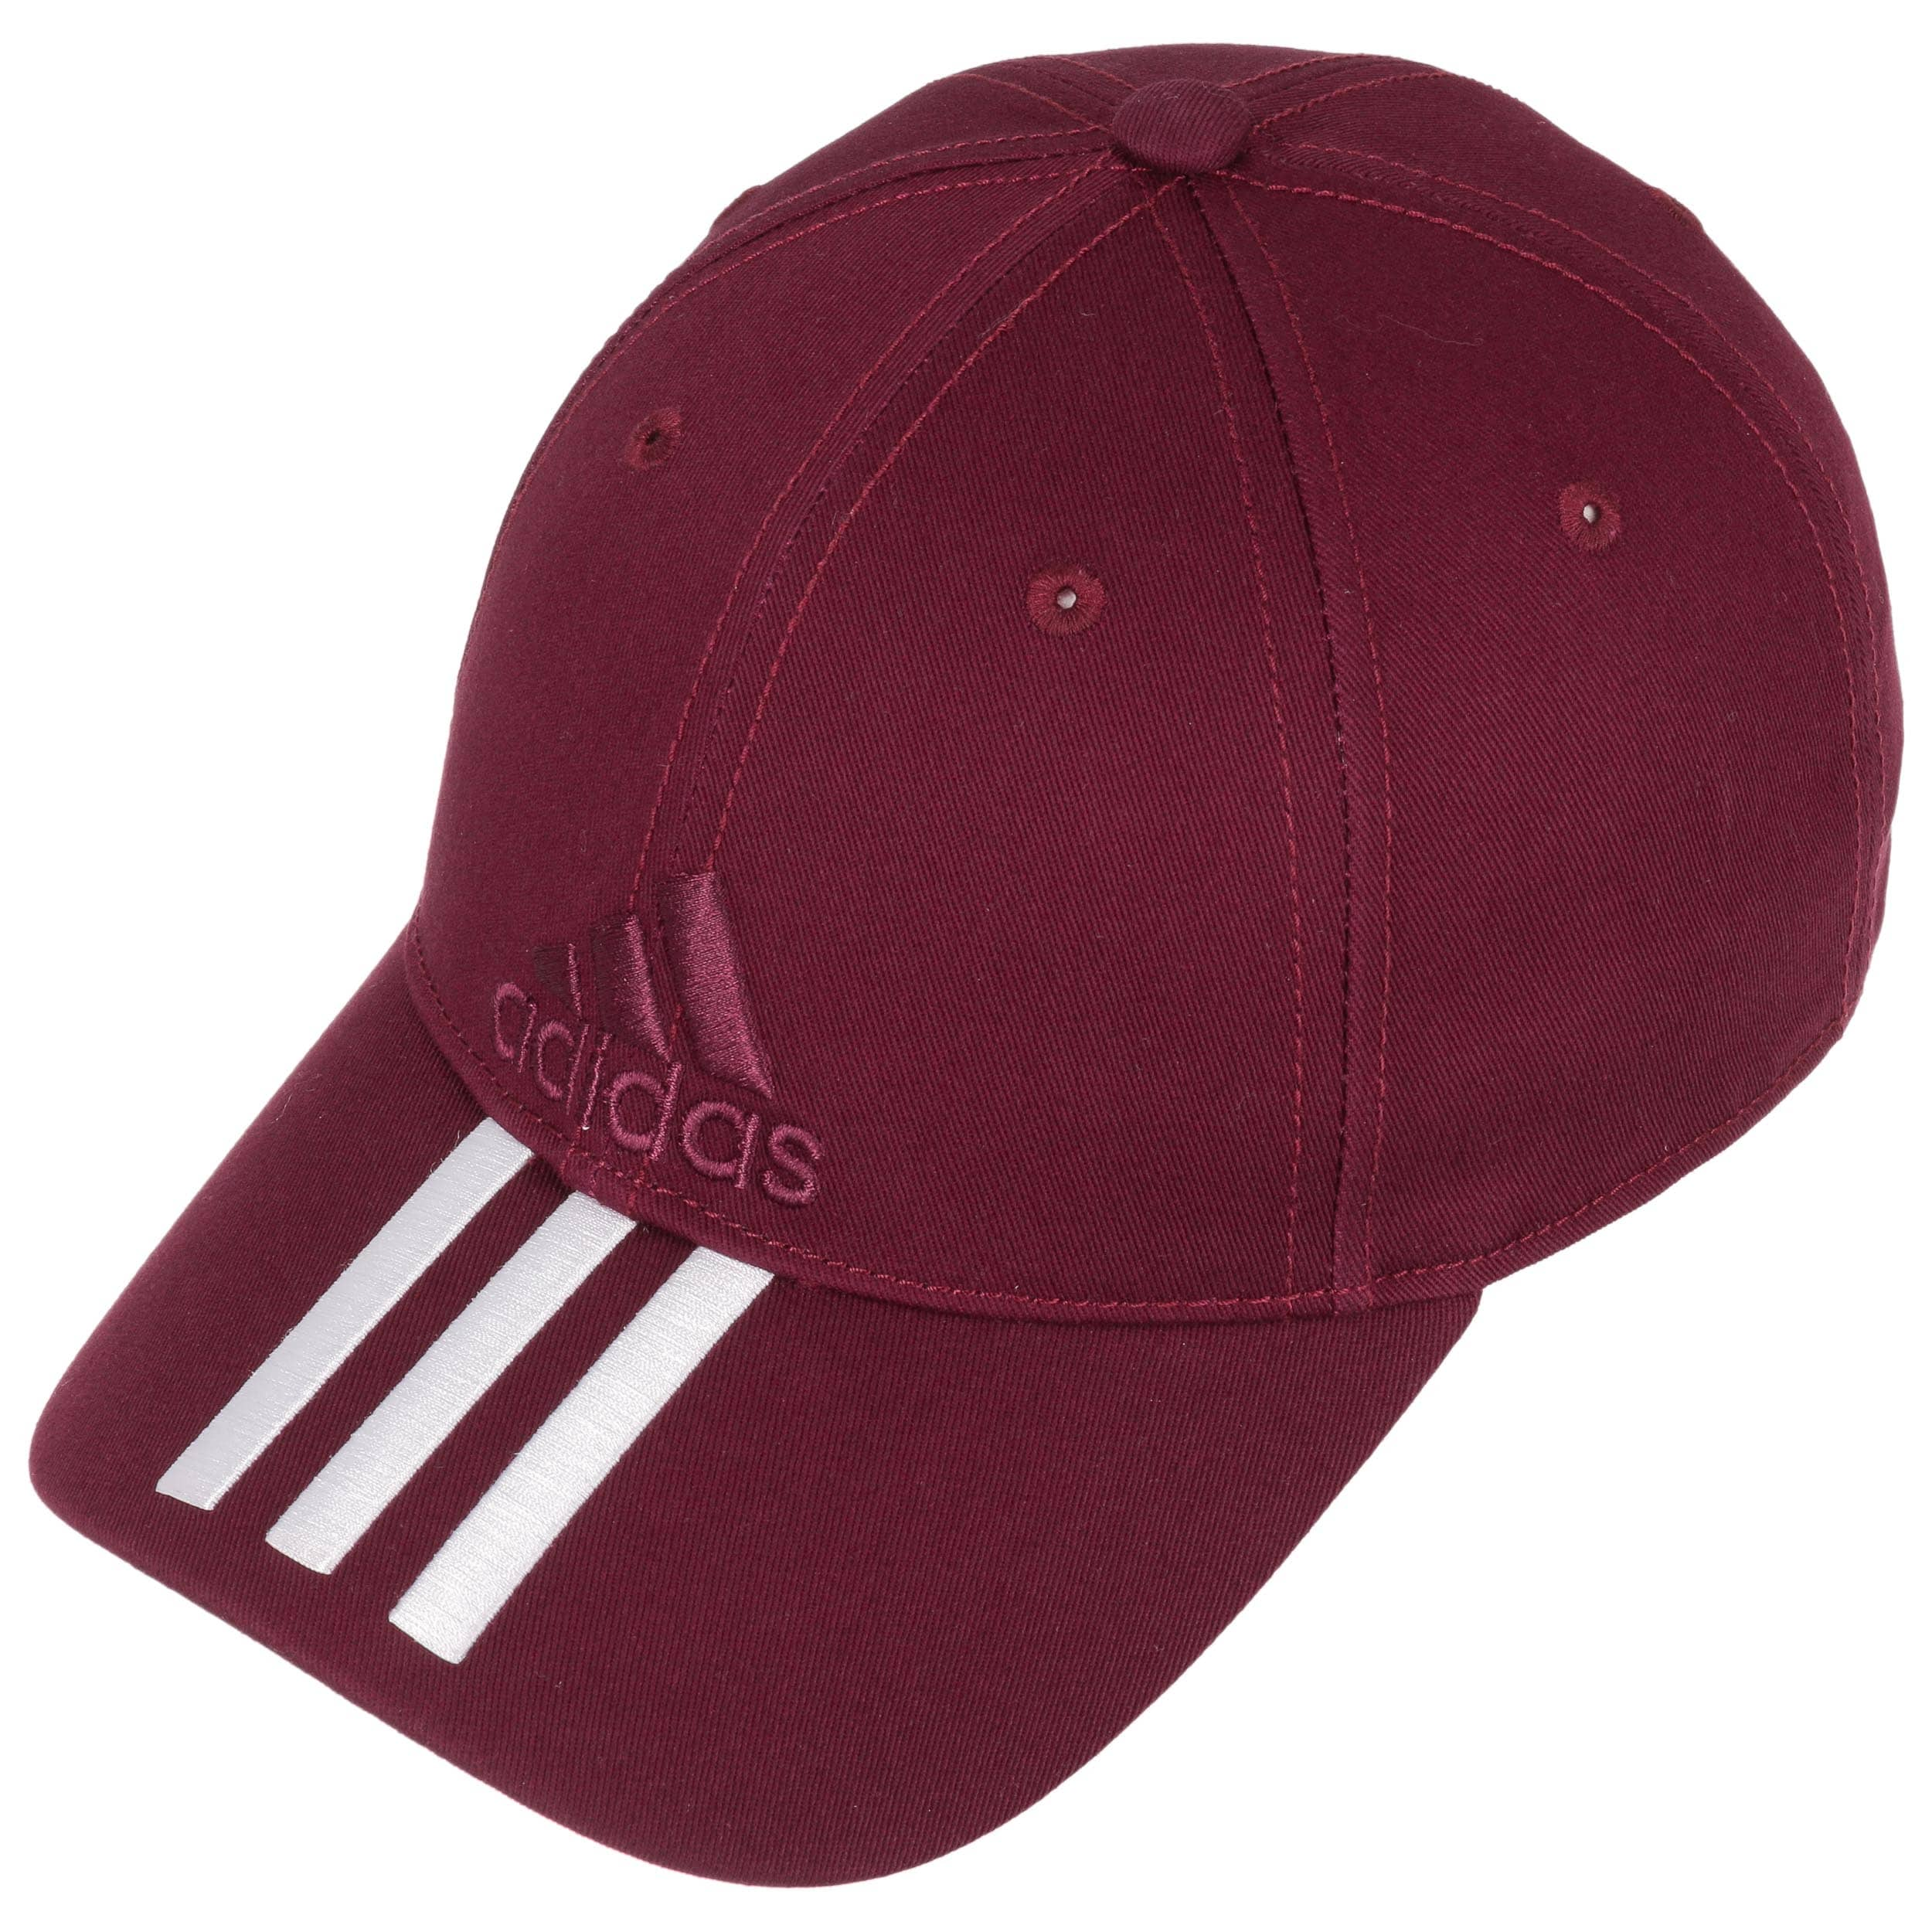 Cappellino 3S Cotton Strapback by adidas - rosso bordeaux 1 ... 8d33fb987bb2